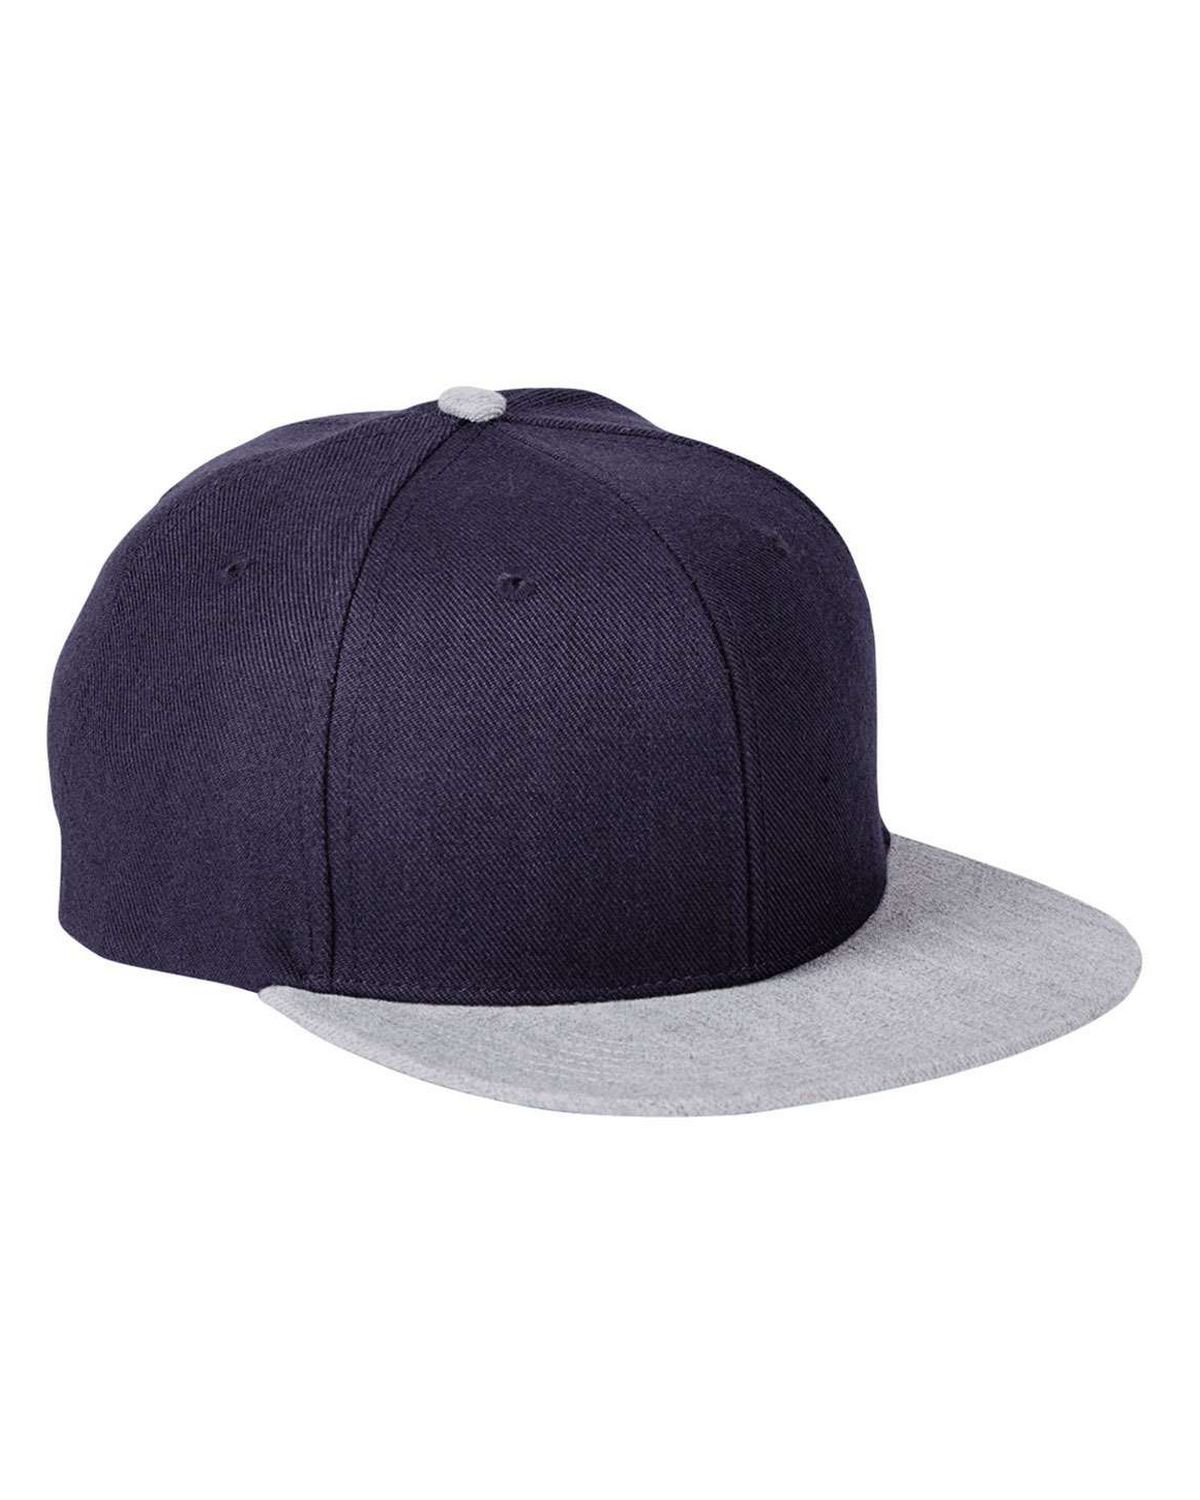 Big Accessories BA539 Sport Cap - Navy/ Hthr Gray - One Size BA539